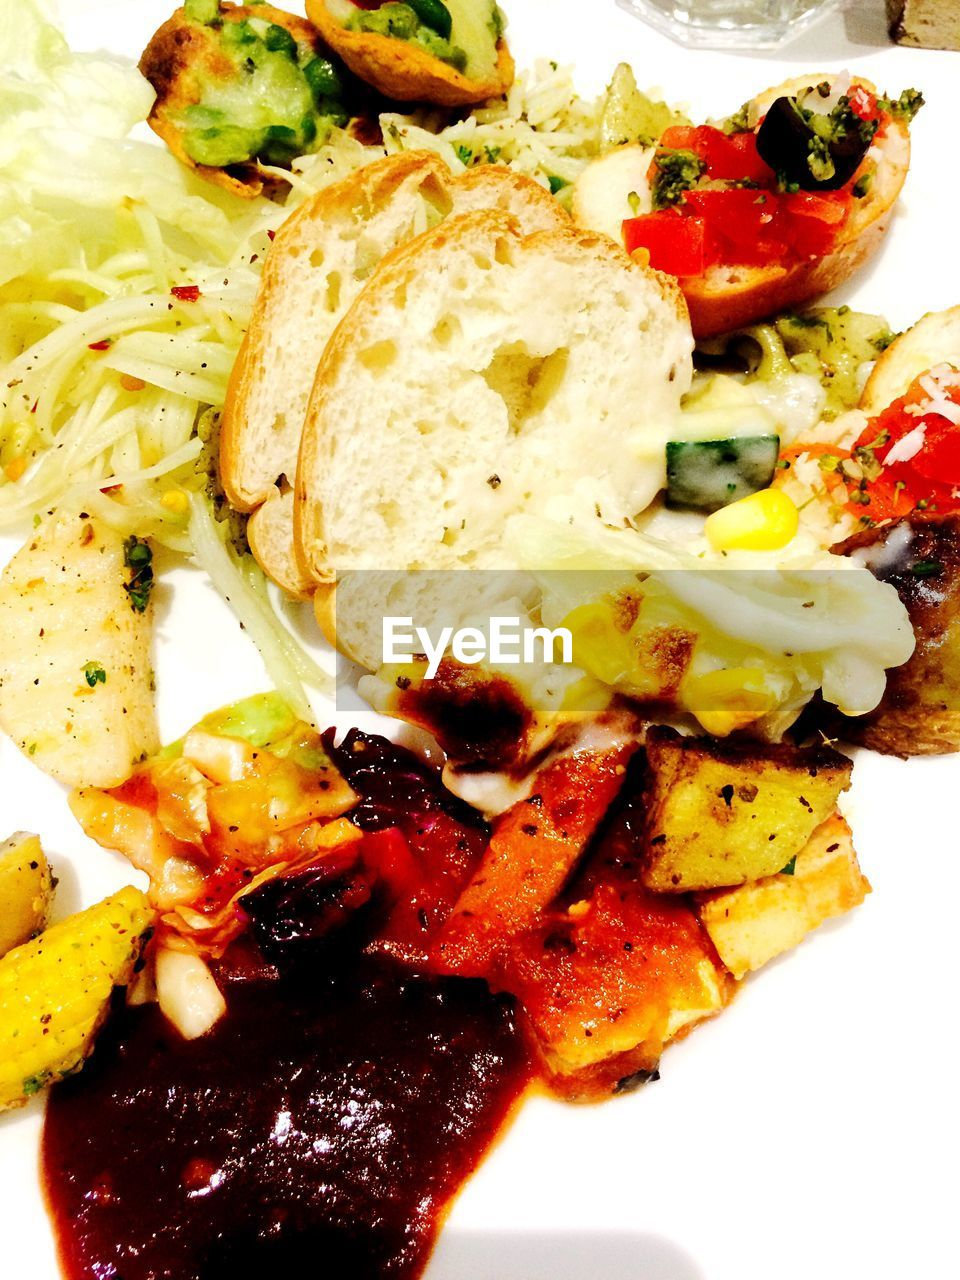 food and drink, food, ready-to-eat, egg, freshness, plate, healthy eating, no people, close-up, salad, indoors, vegetable, day